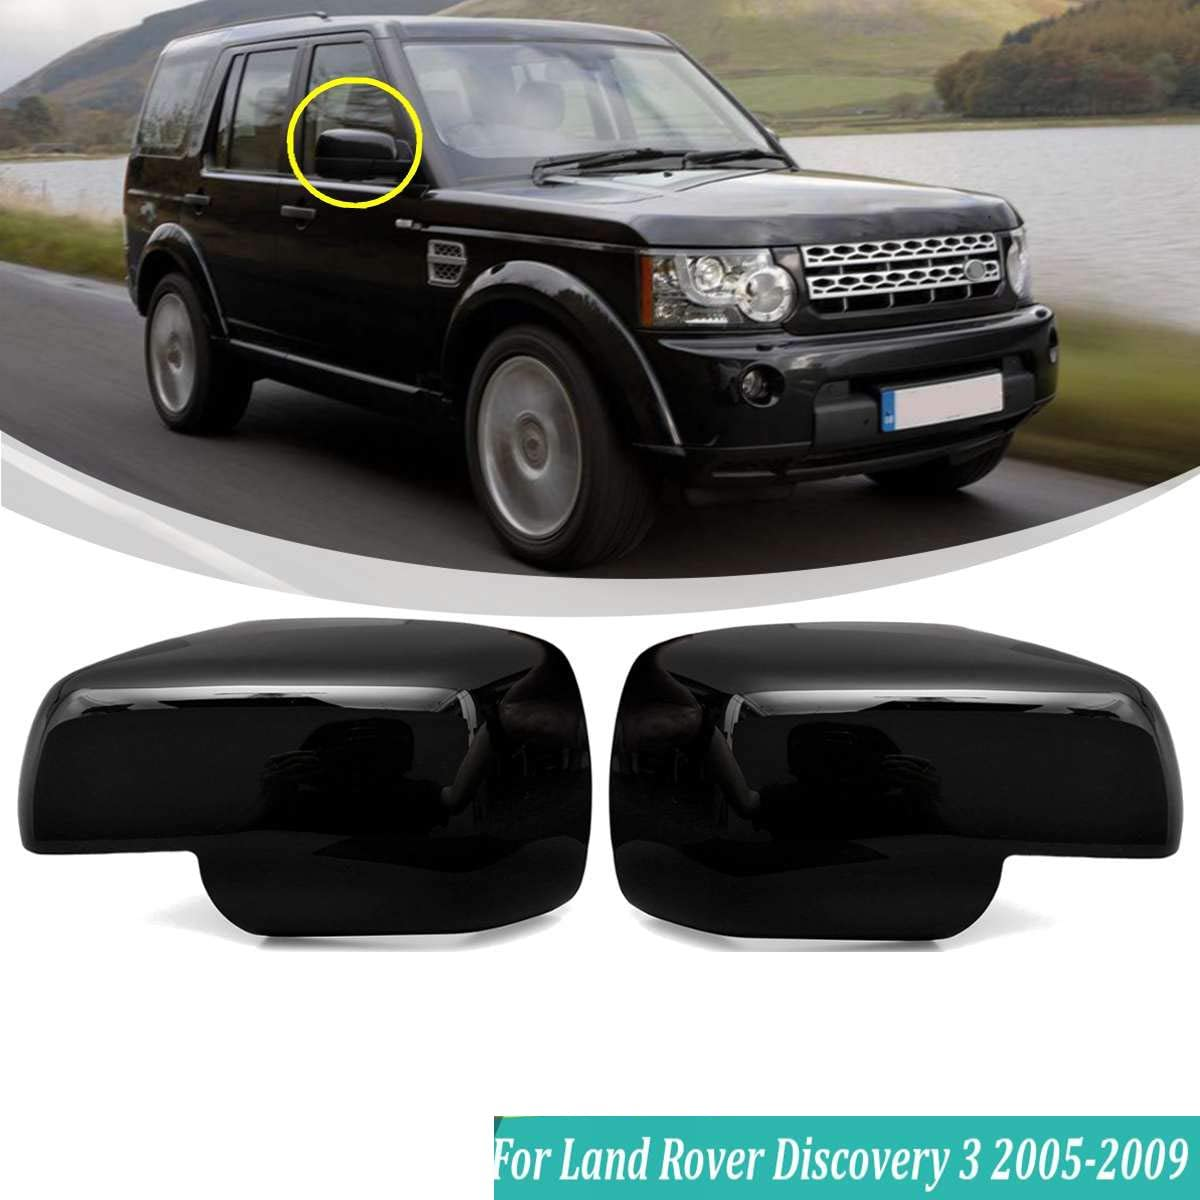 Transit Parts Genuine Discovery 3 4 Surround Camera Front Side Mirrors Fw9319H422Ab